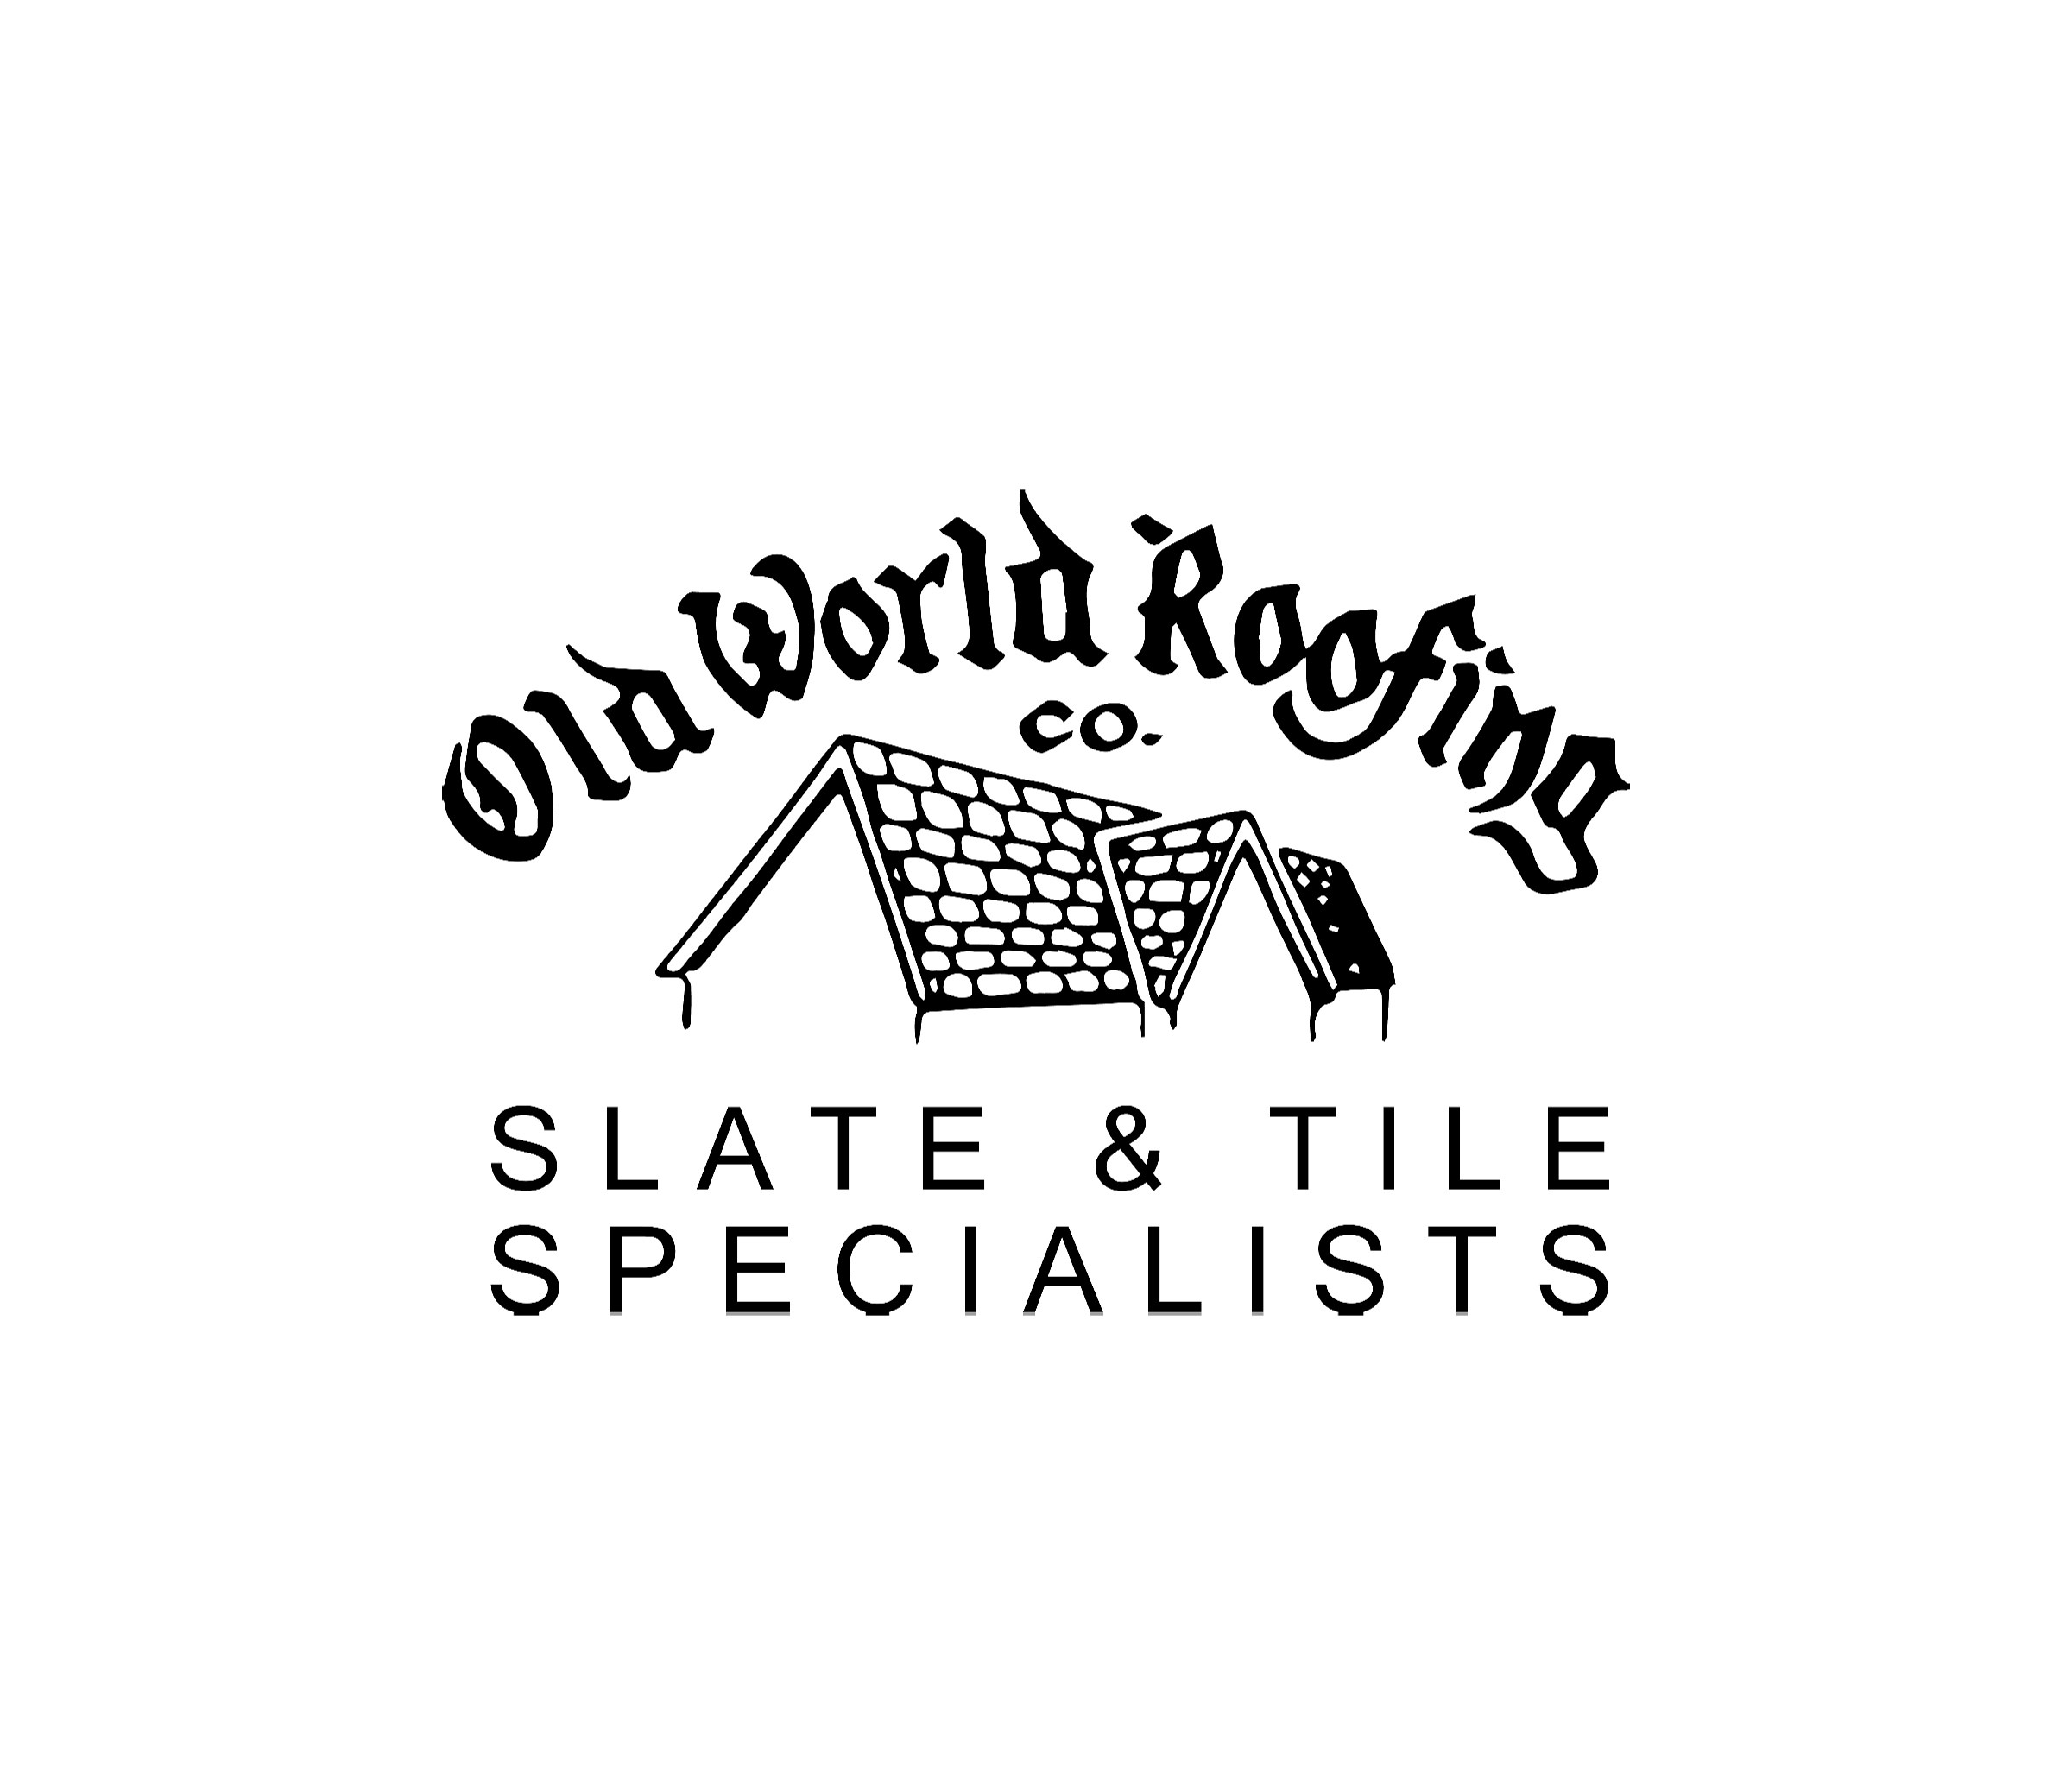 Old World Roofing Co, LLC